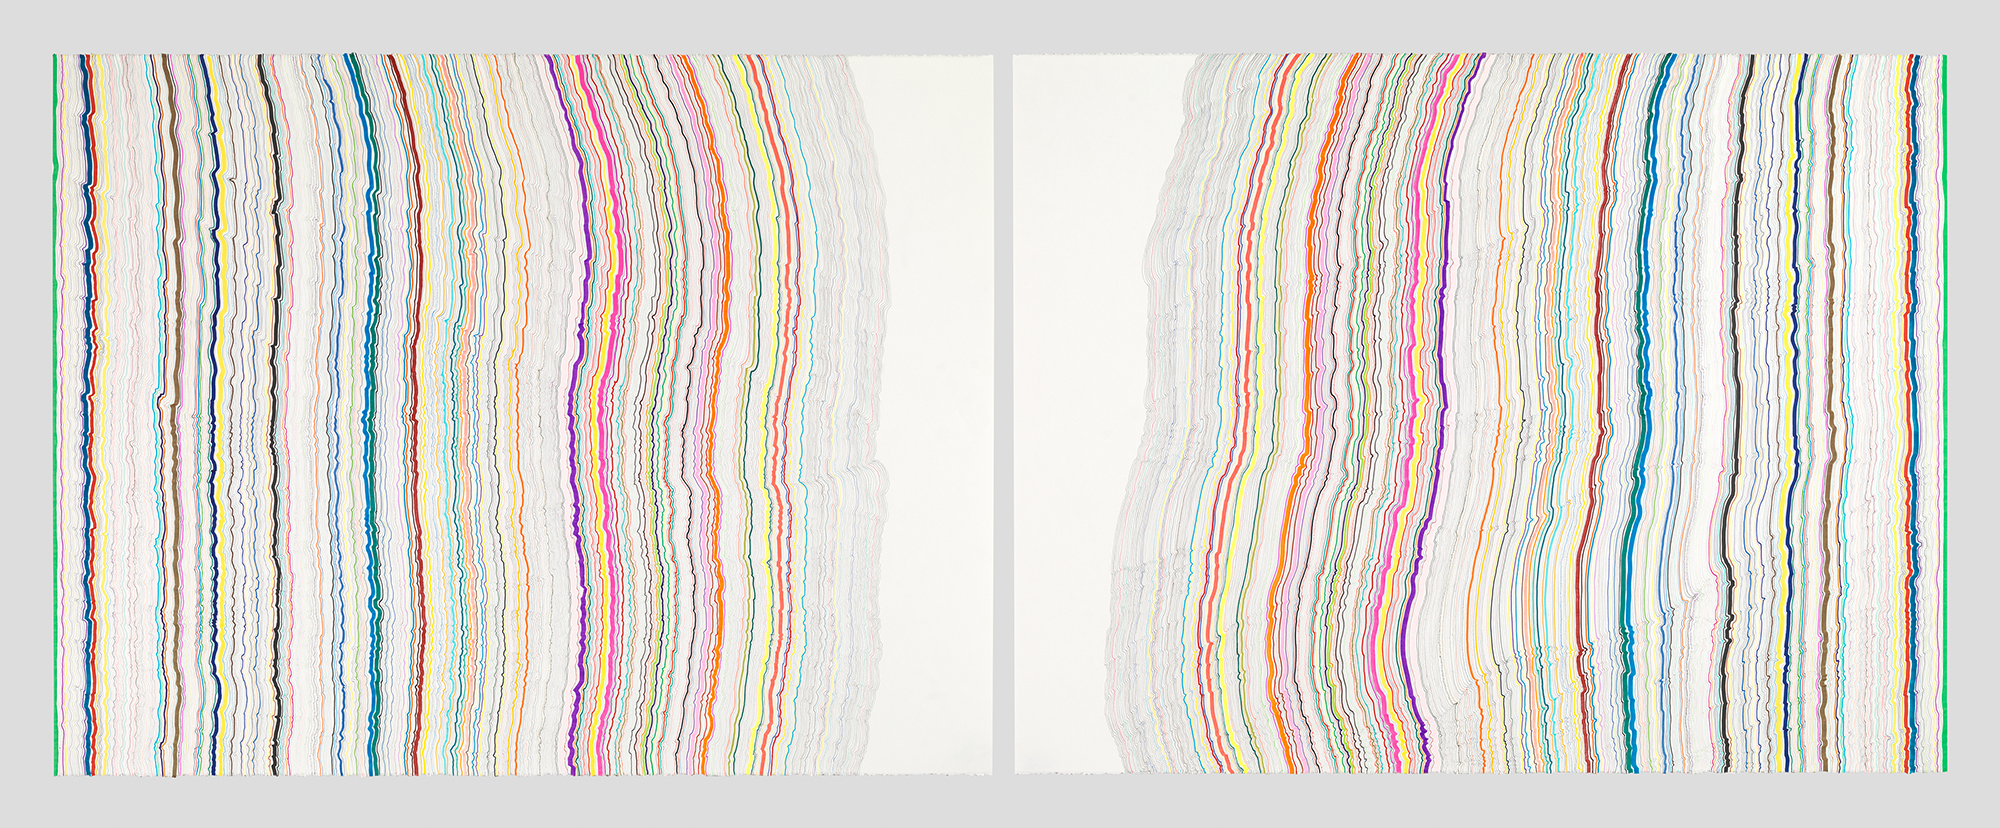 Chiral Lines 6, 2014